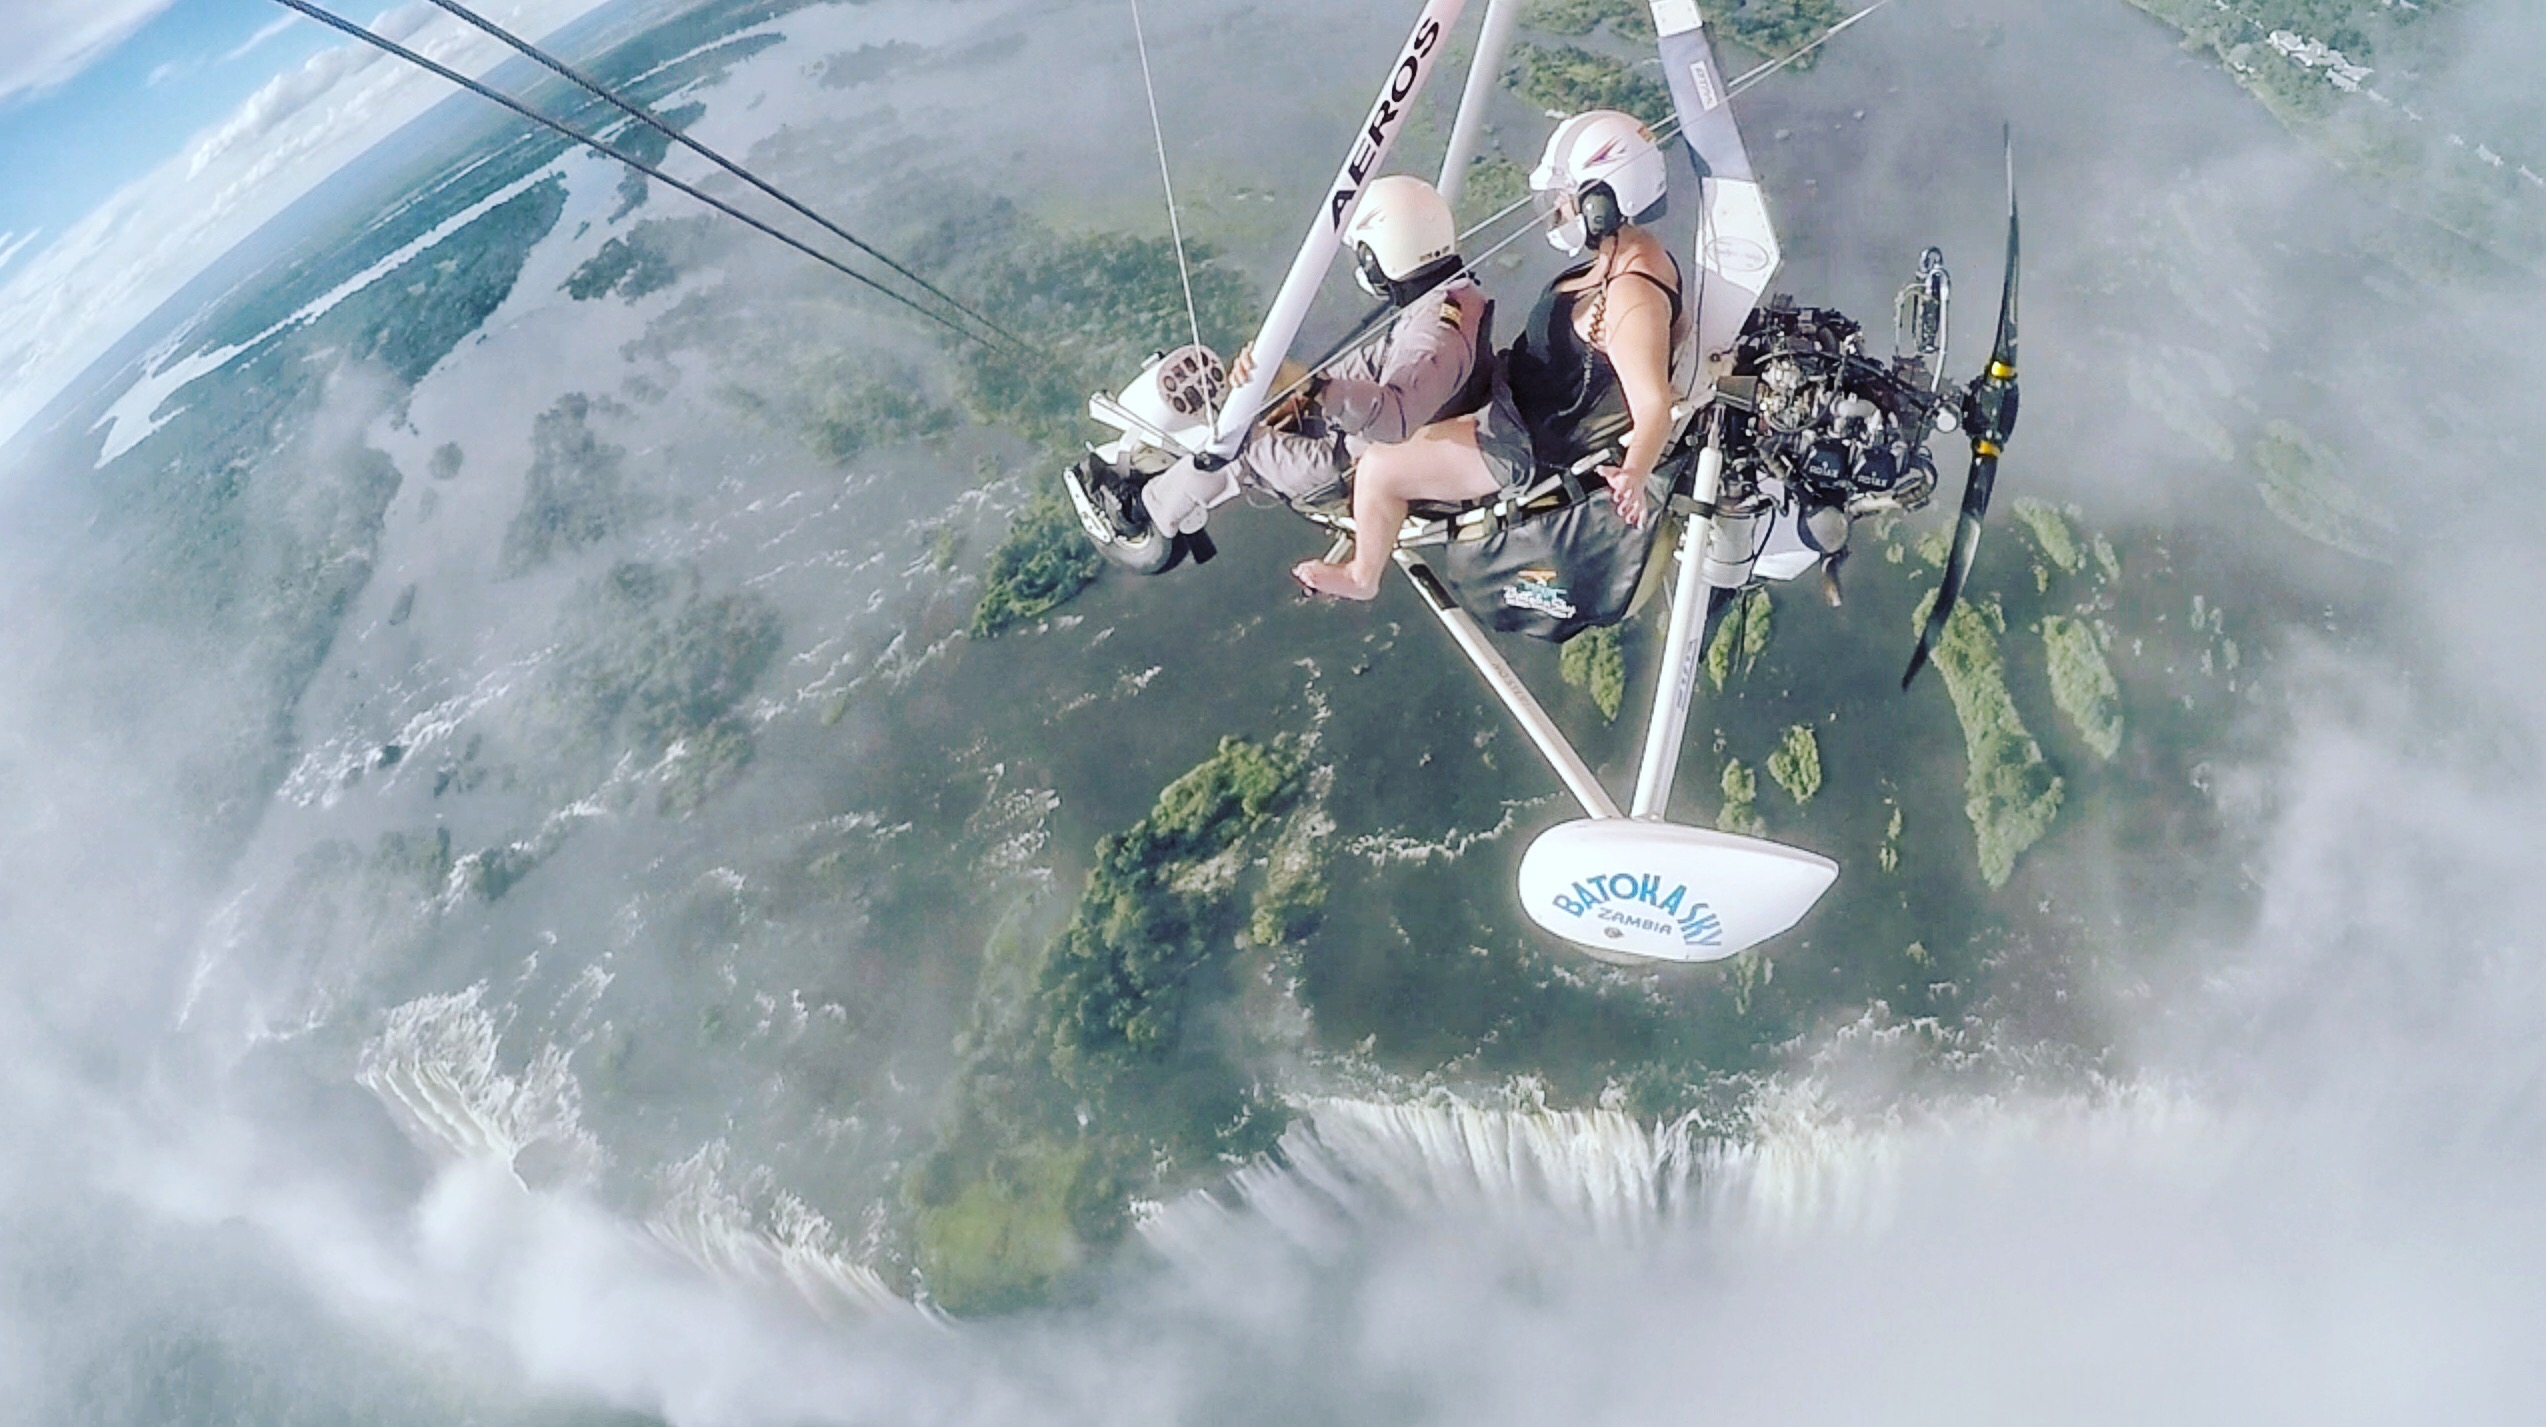 Lite-flyer over the mist of Victoria Falls